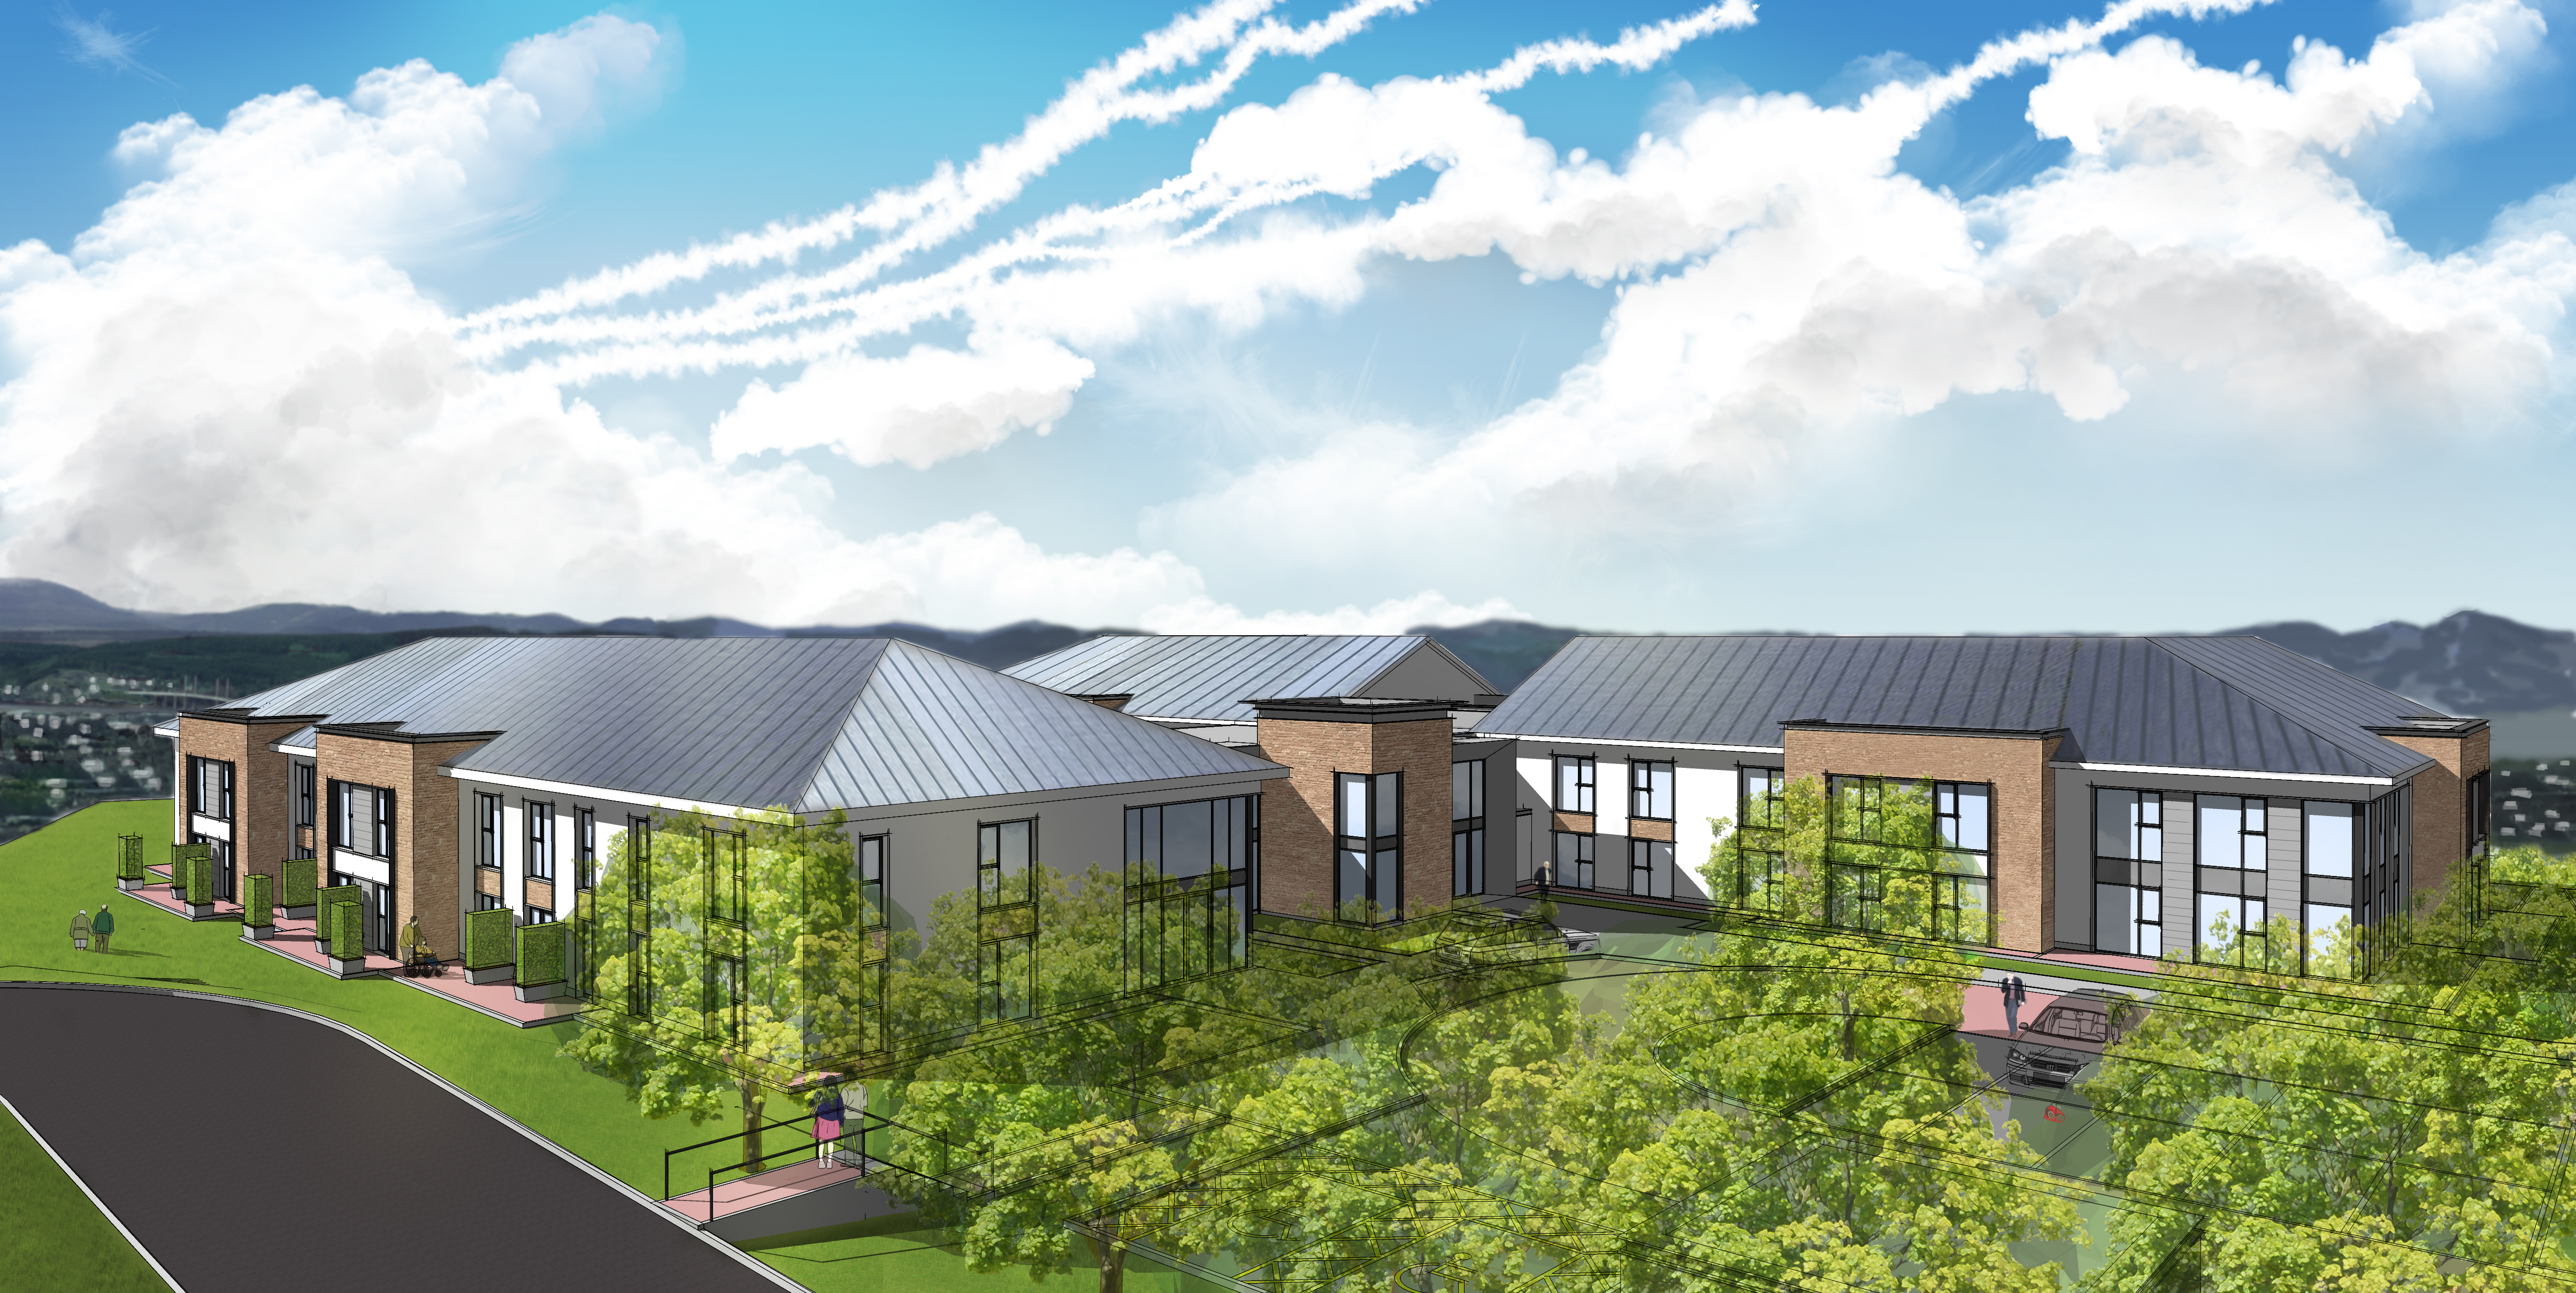 An artist's impression of how the new care home and facility will look for Inverness providing a much needed local care service in the area